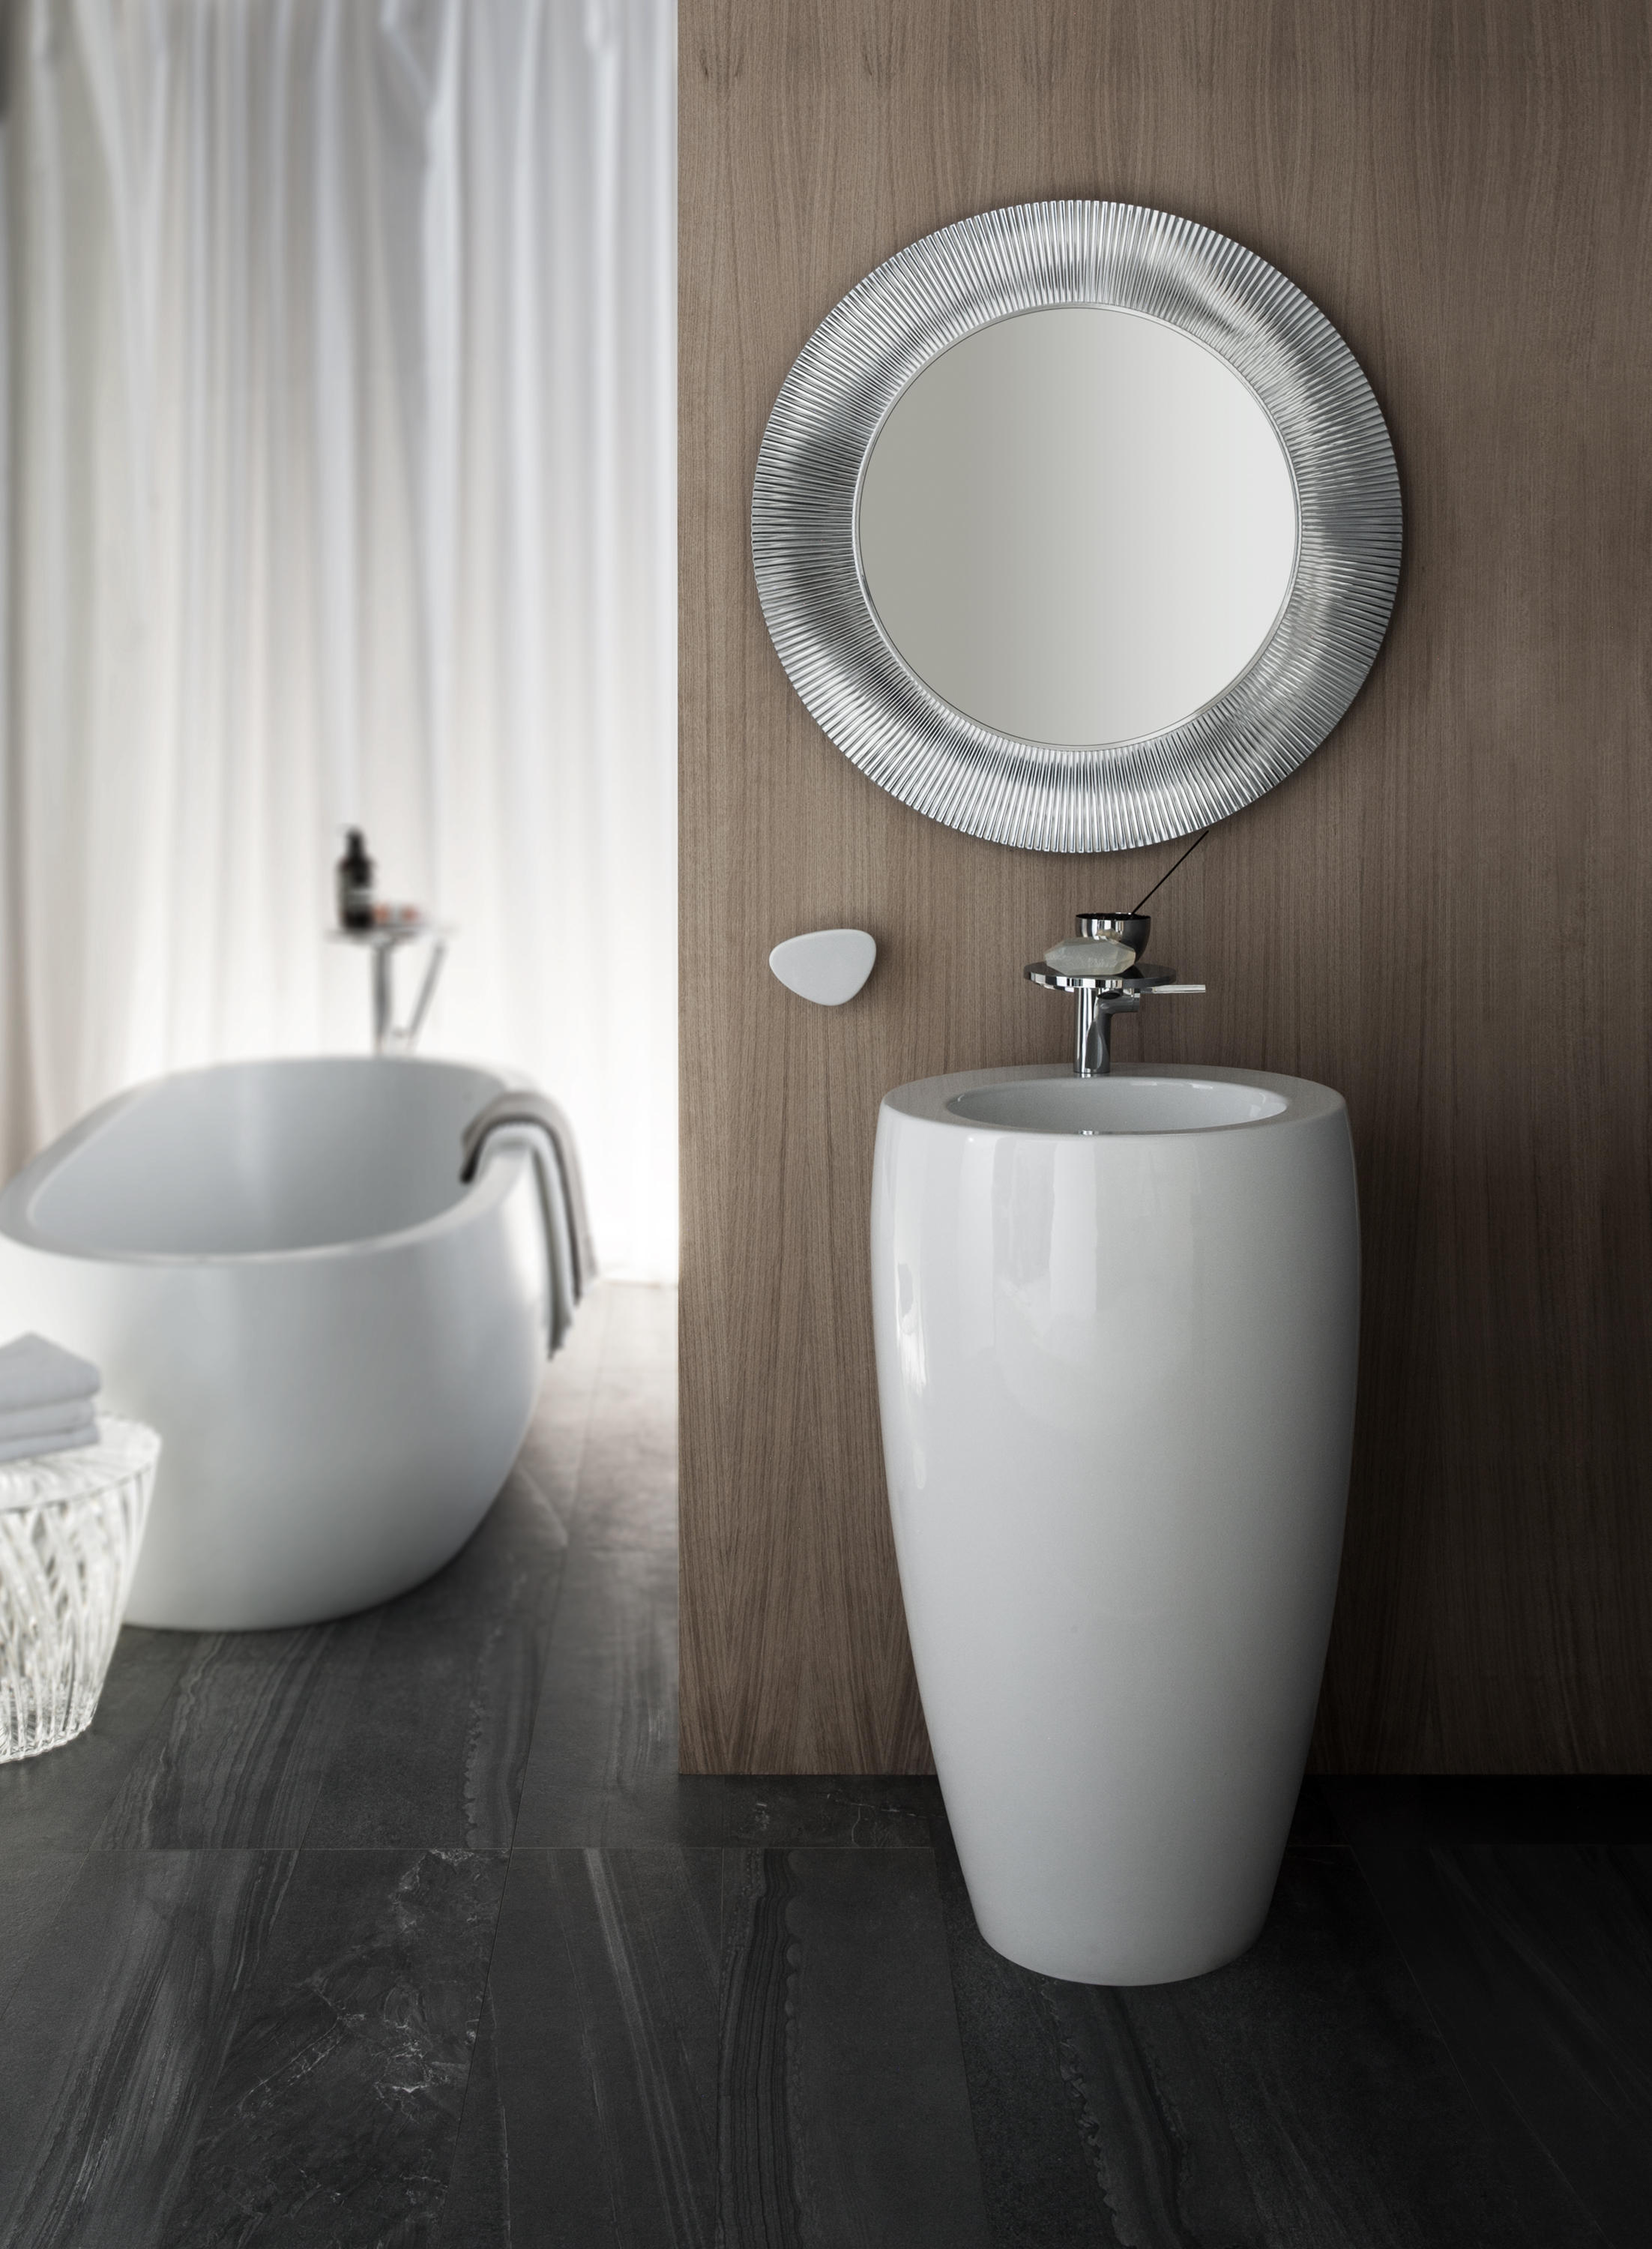 ilbagnoalessi one semi recessed washbasin lavabi. Black Bedroom Furniture Sets. Home Design Ideas